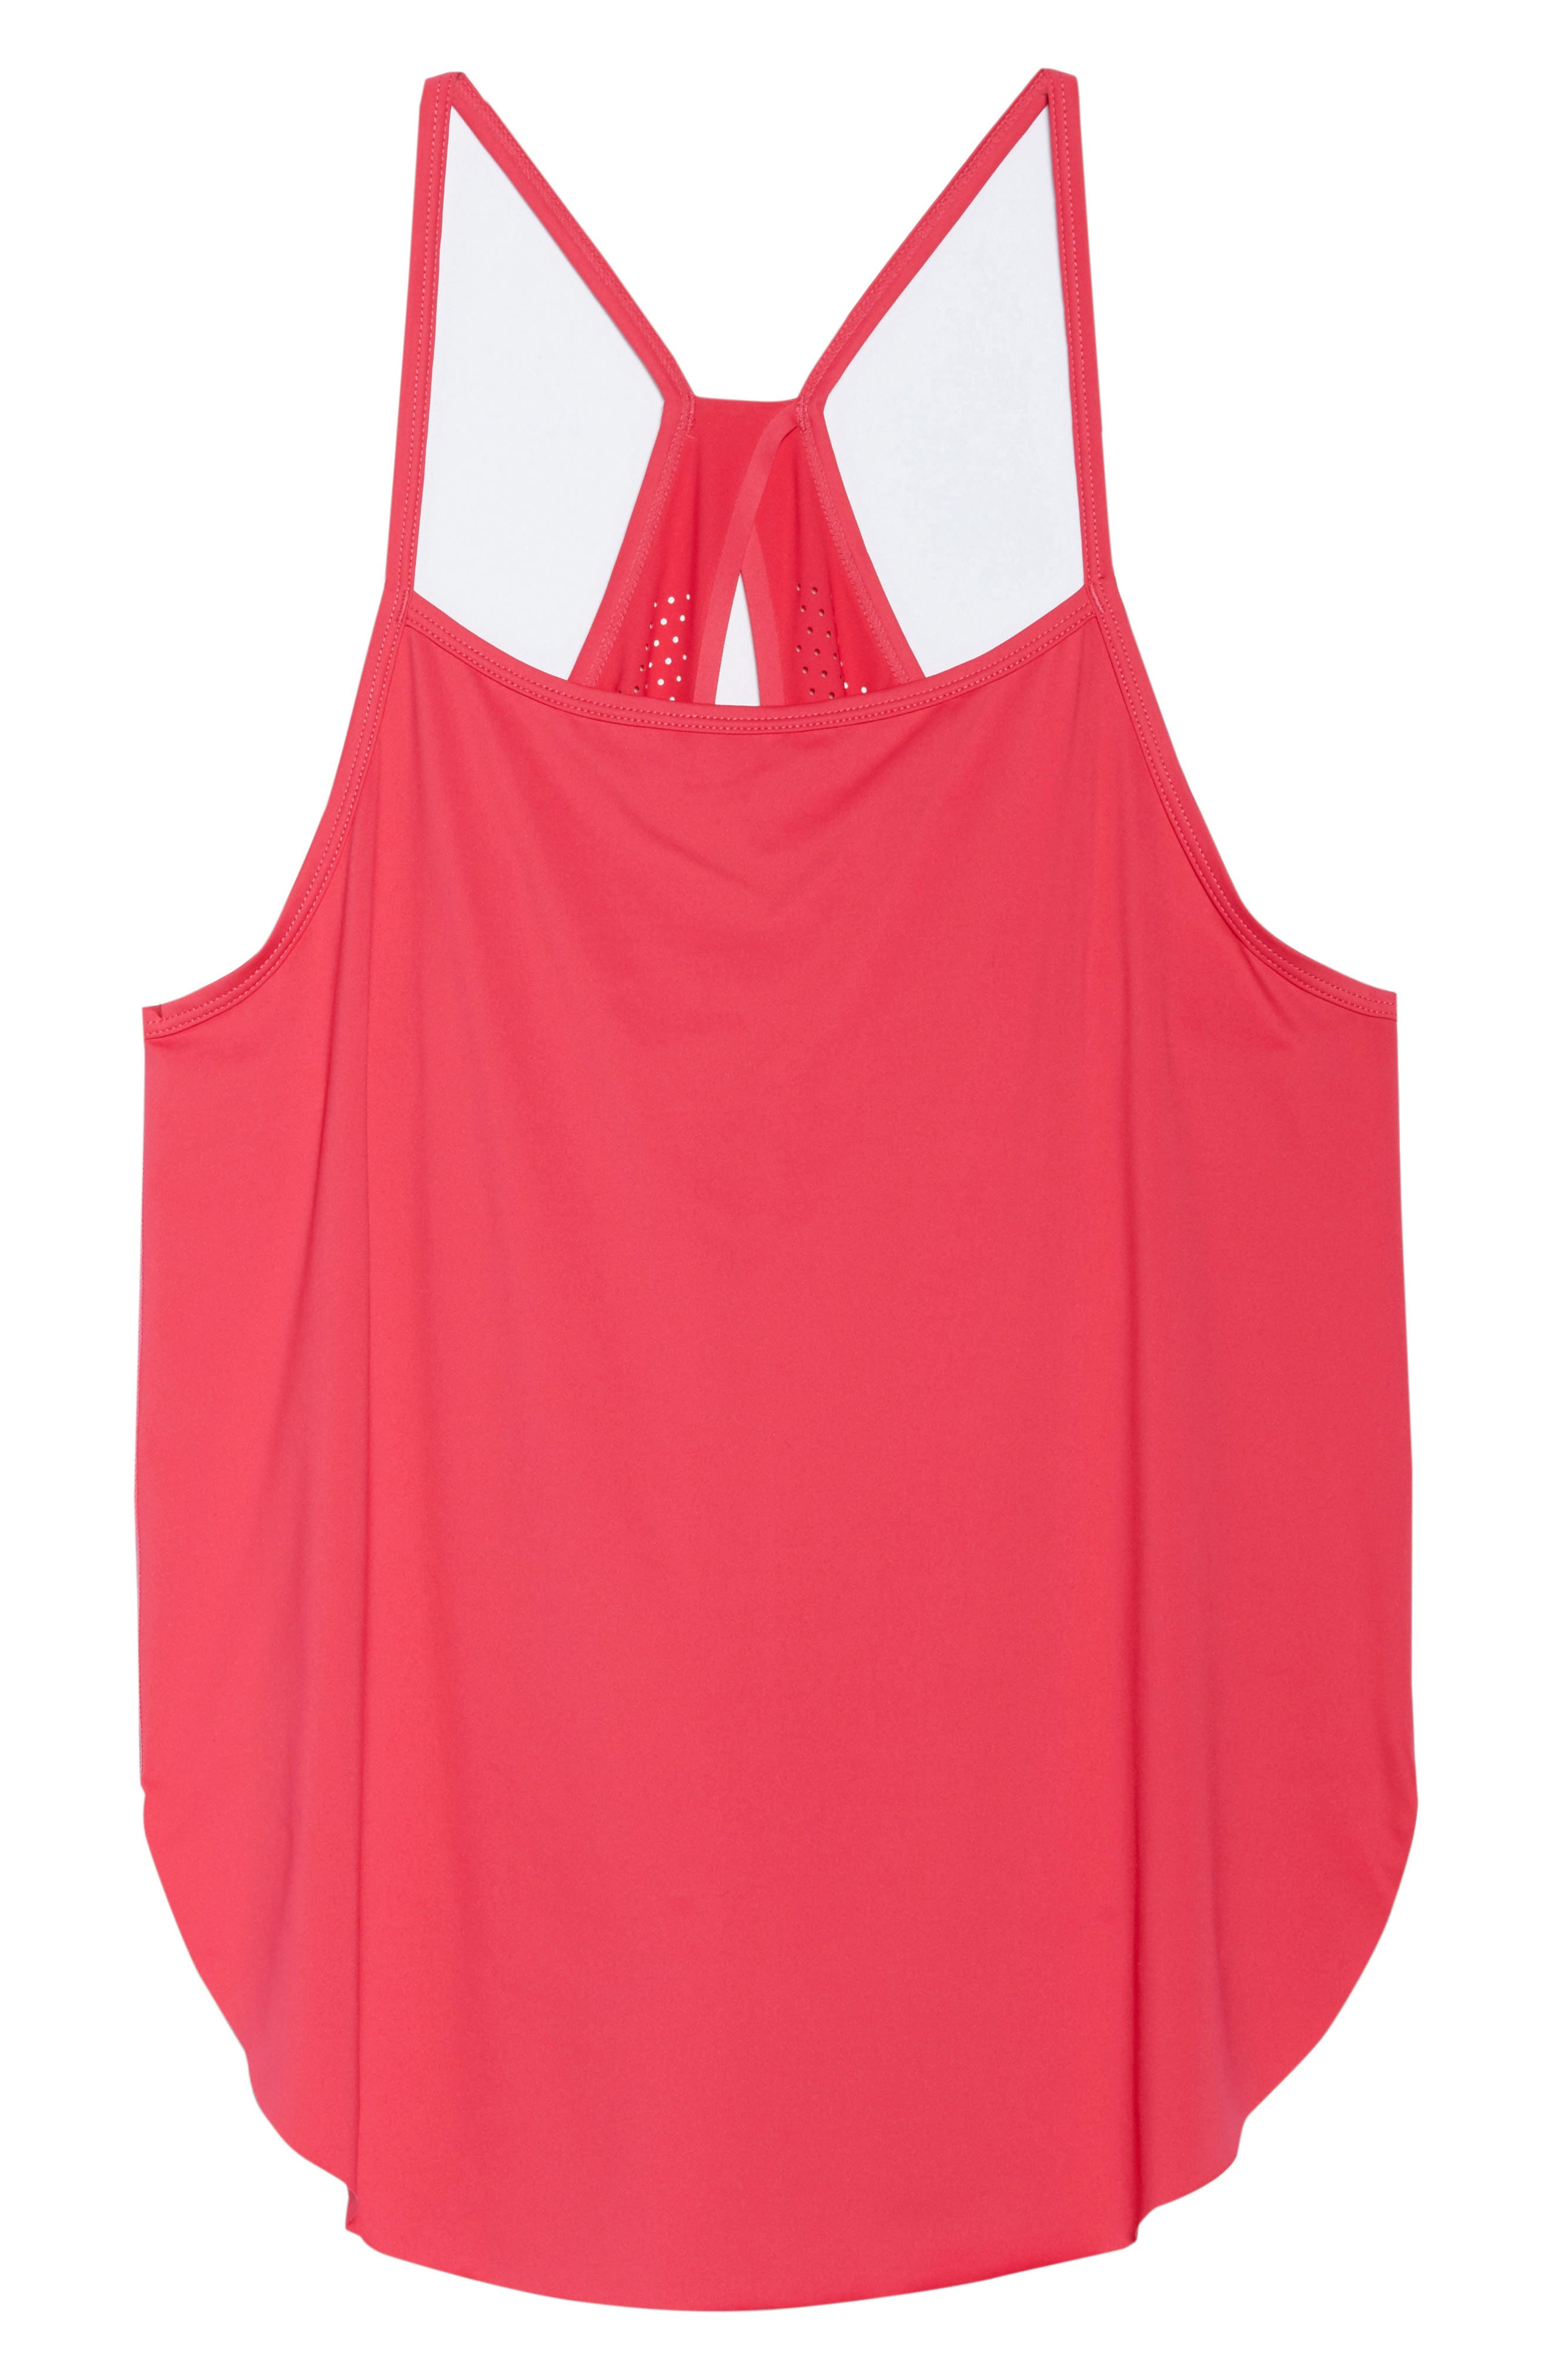 Fera Perforated Tank,                             Alternate thumbnail 7, color,                             Red Desire